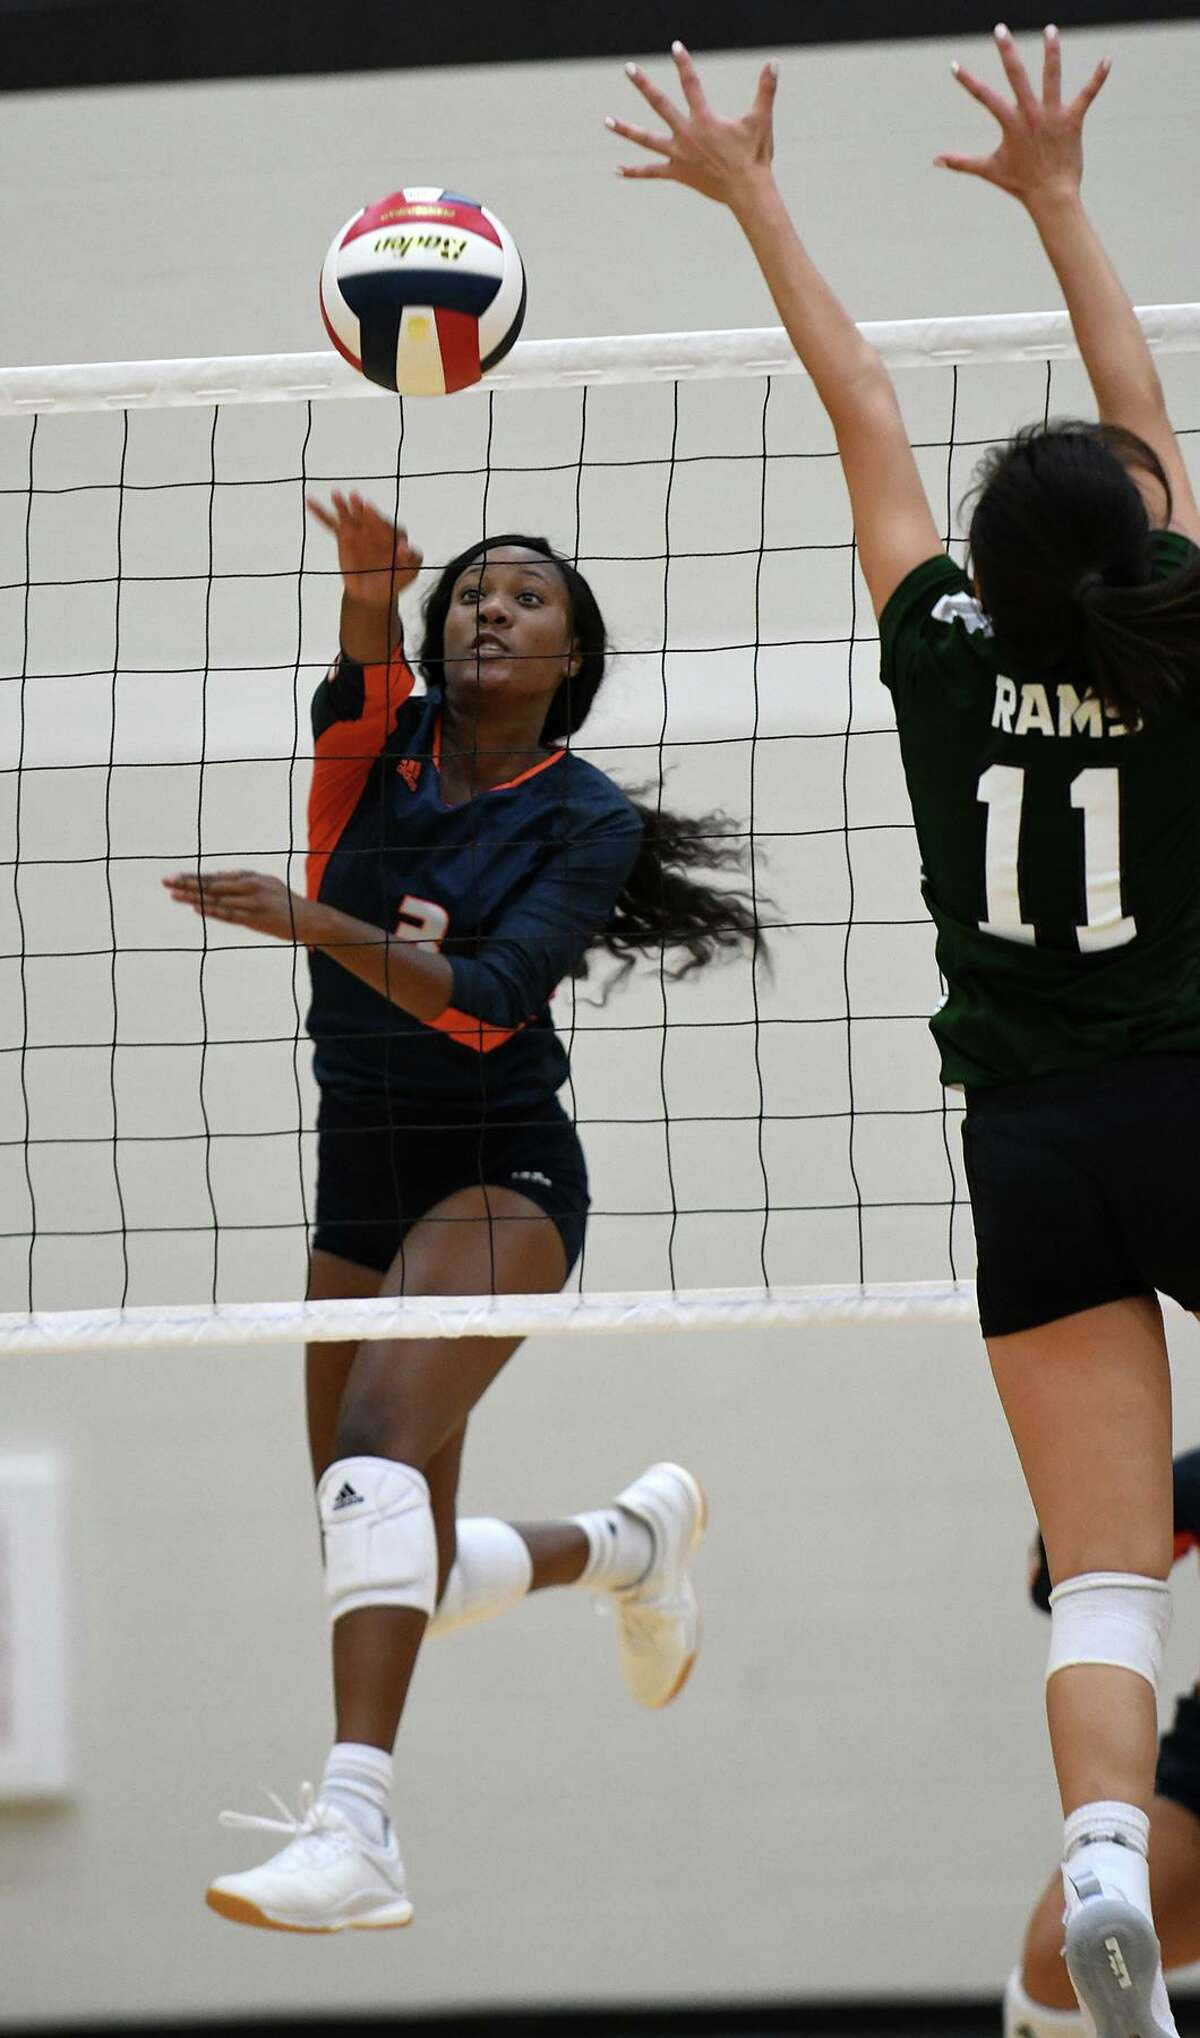 Bridgeland senior right side Alyssa McMorris (3) slams a ball past Cy Ridge sophomore outside hitter Christina Pham (11) during their pool play matchup in the 2019 Katy/Cy-Fair Volleyball Classic at Cy Parks High School on August 8, 2019.